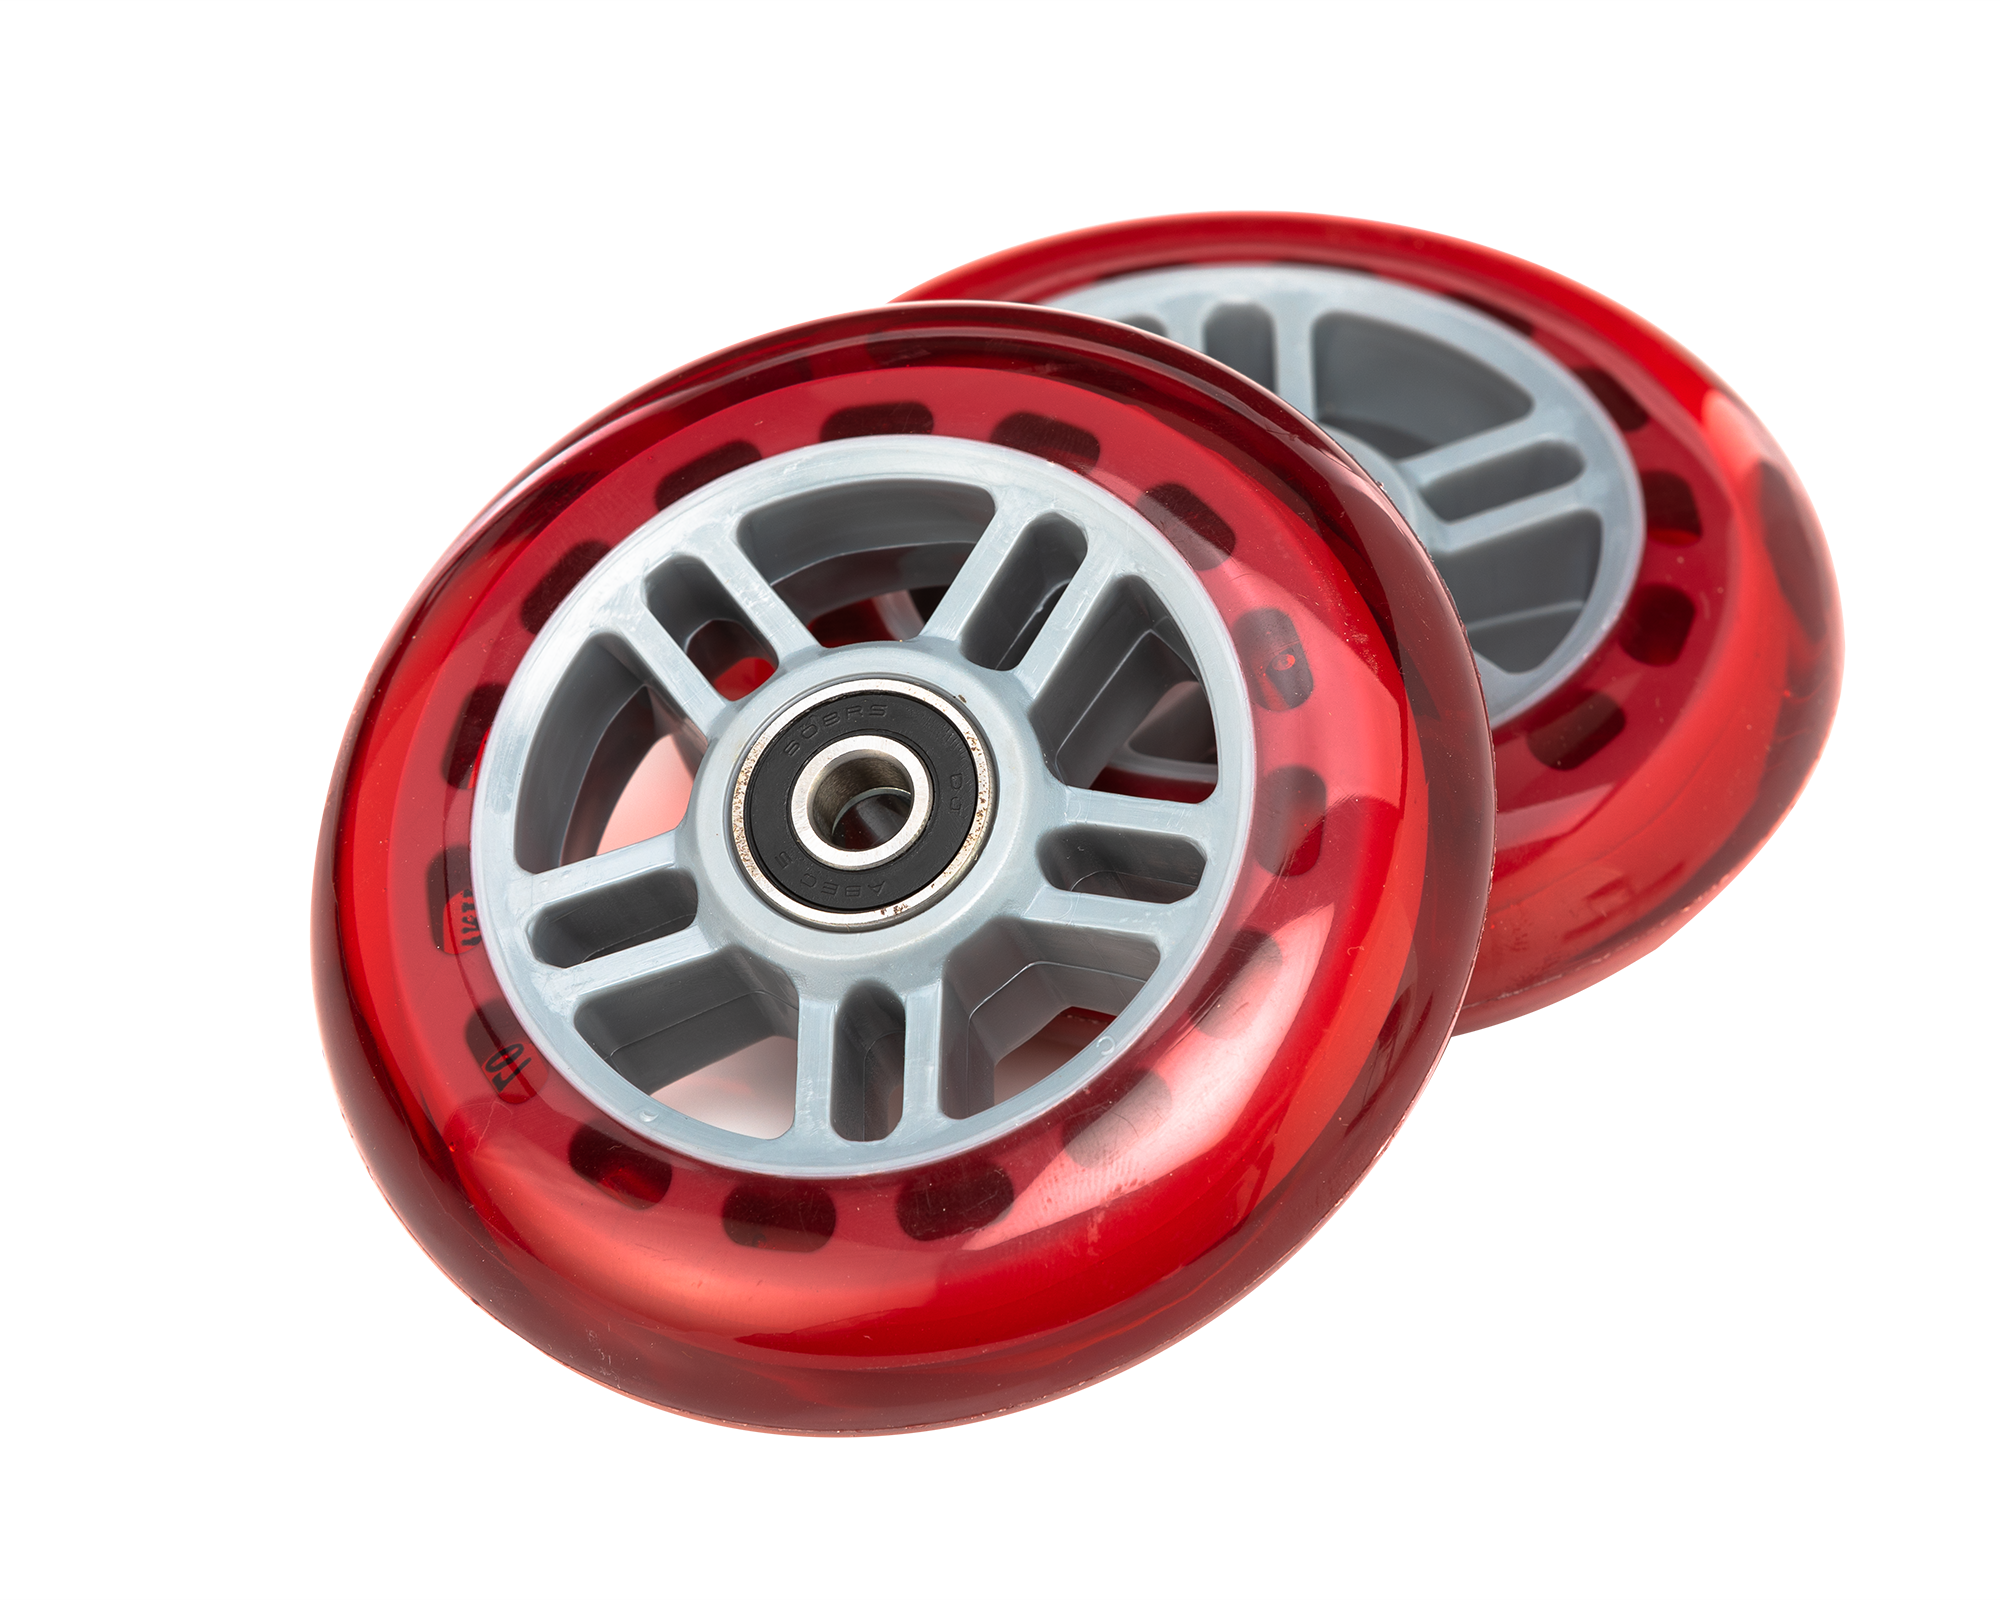 Razor Scooter 98mm Wheels - Red